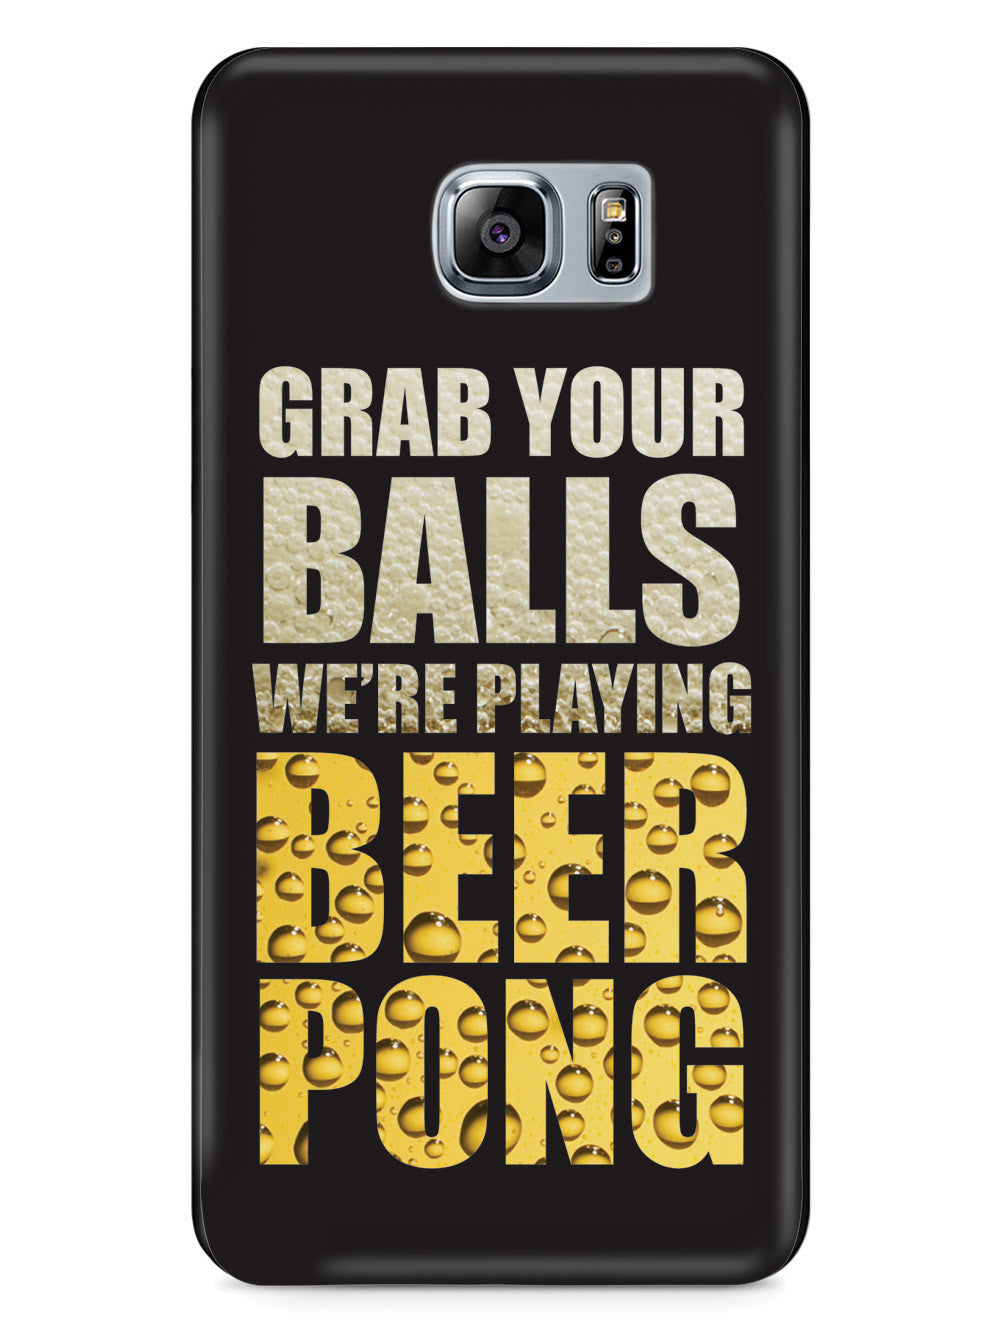 Grab Your Balls - Beer Pong Case